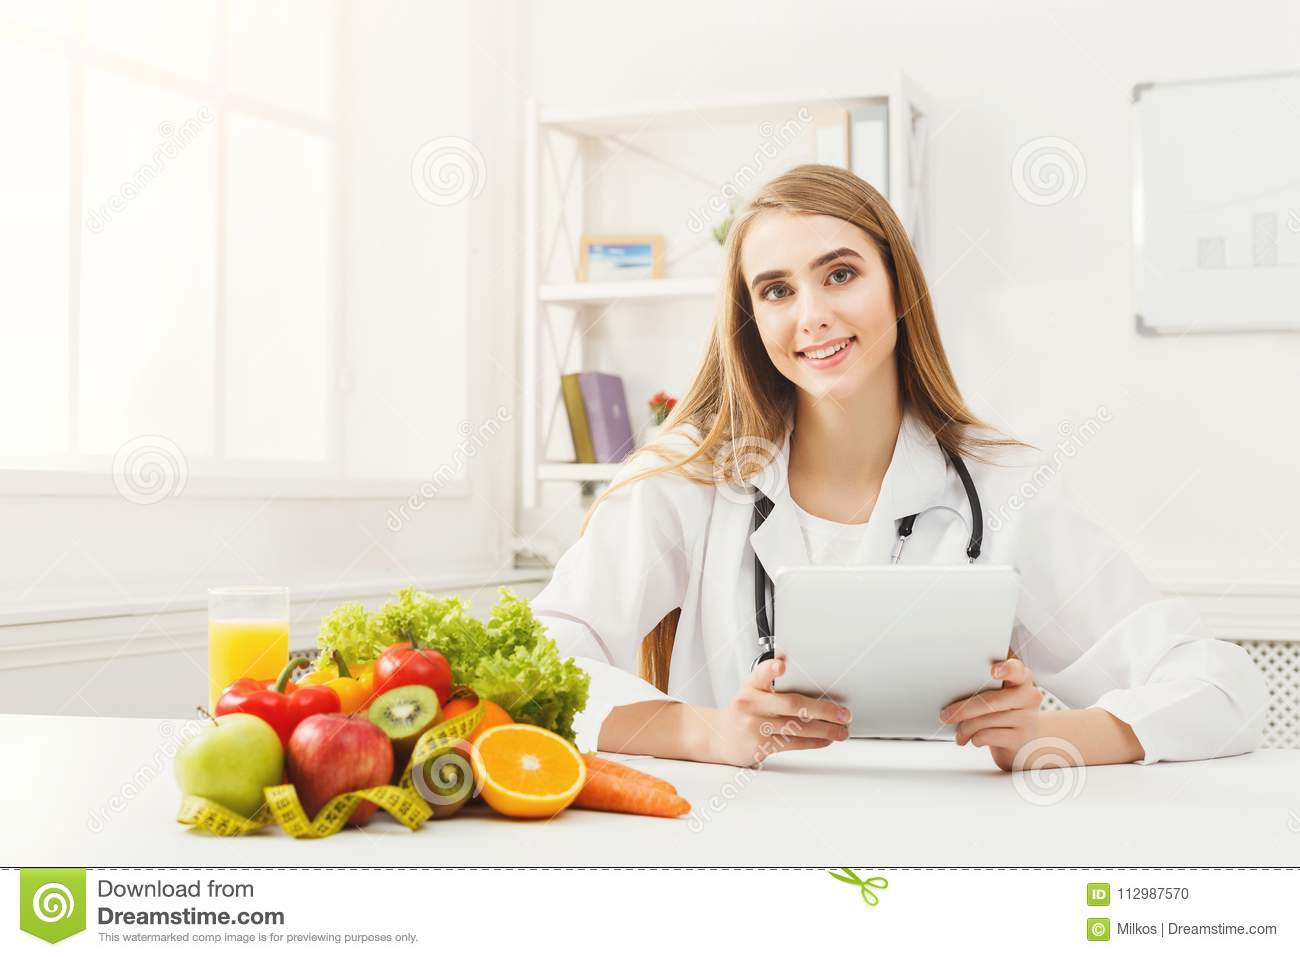 Female nutritionist working on digital tablet